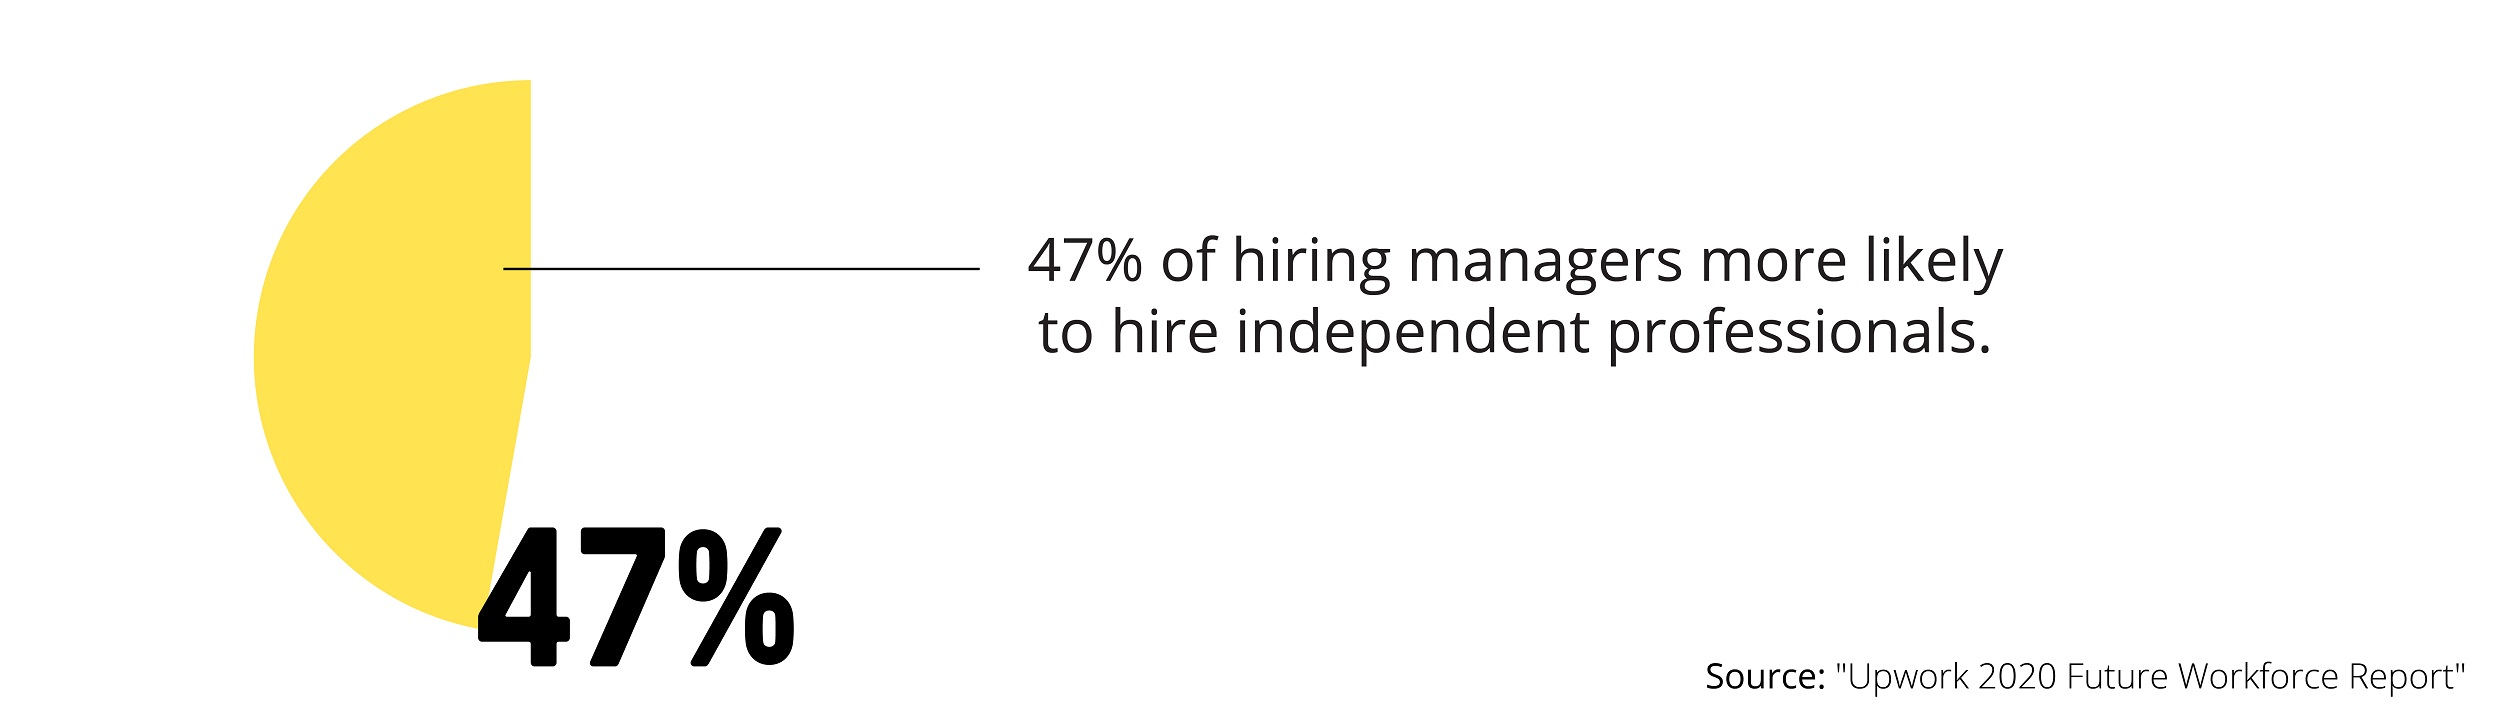 Statistic of Hiring Managers Hiring Independent Professionals